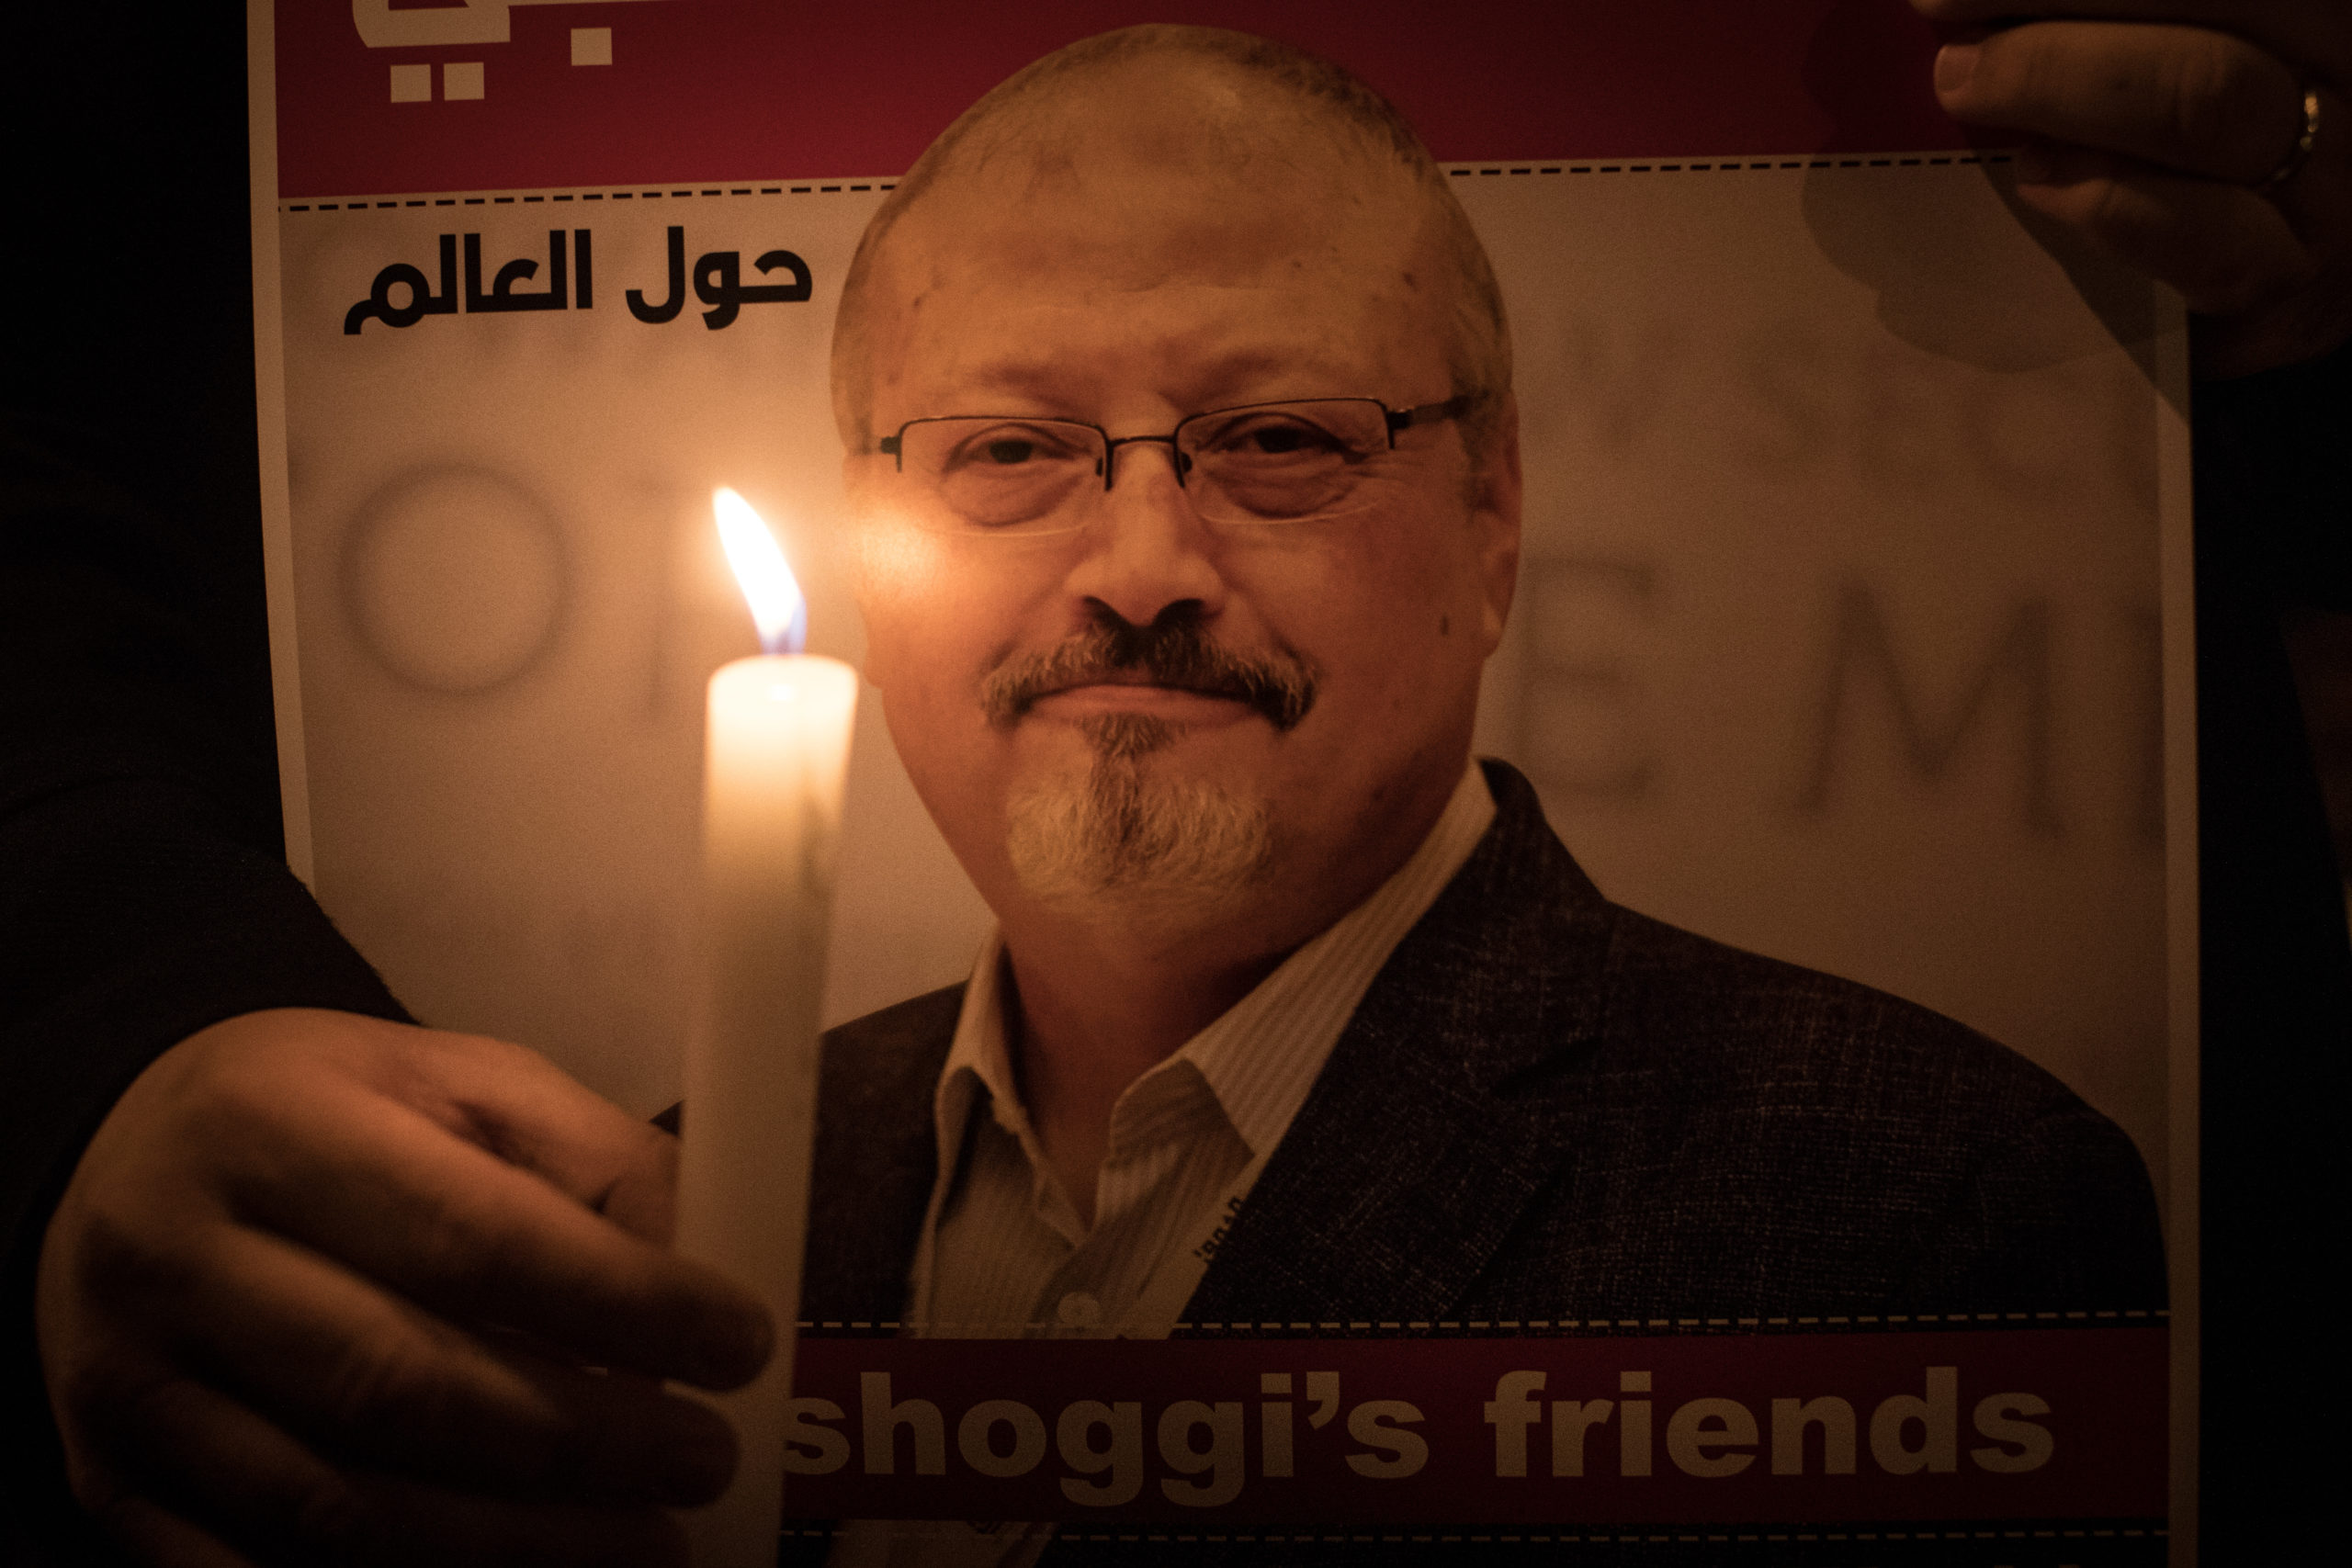 People take part in a candle light vigil to remember journalist Jamal Khashoggi outside the Saudi Arabia consulate Turkey. (Chris McGrath/Getty Images)